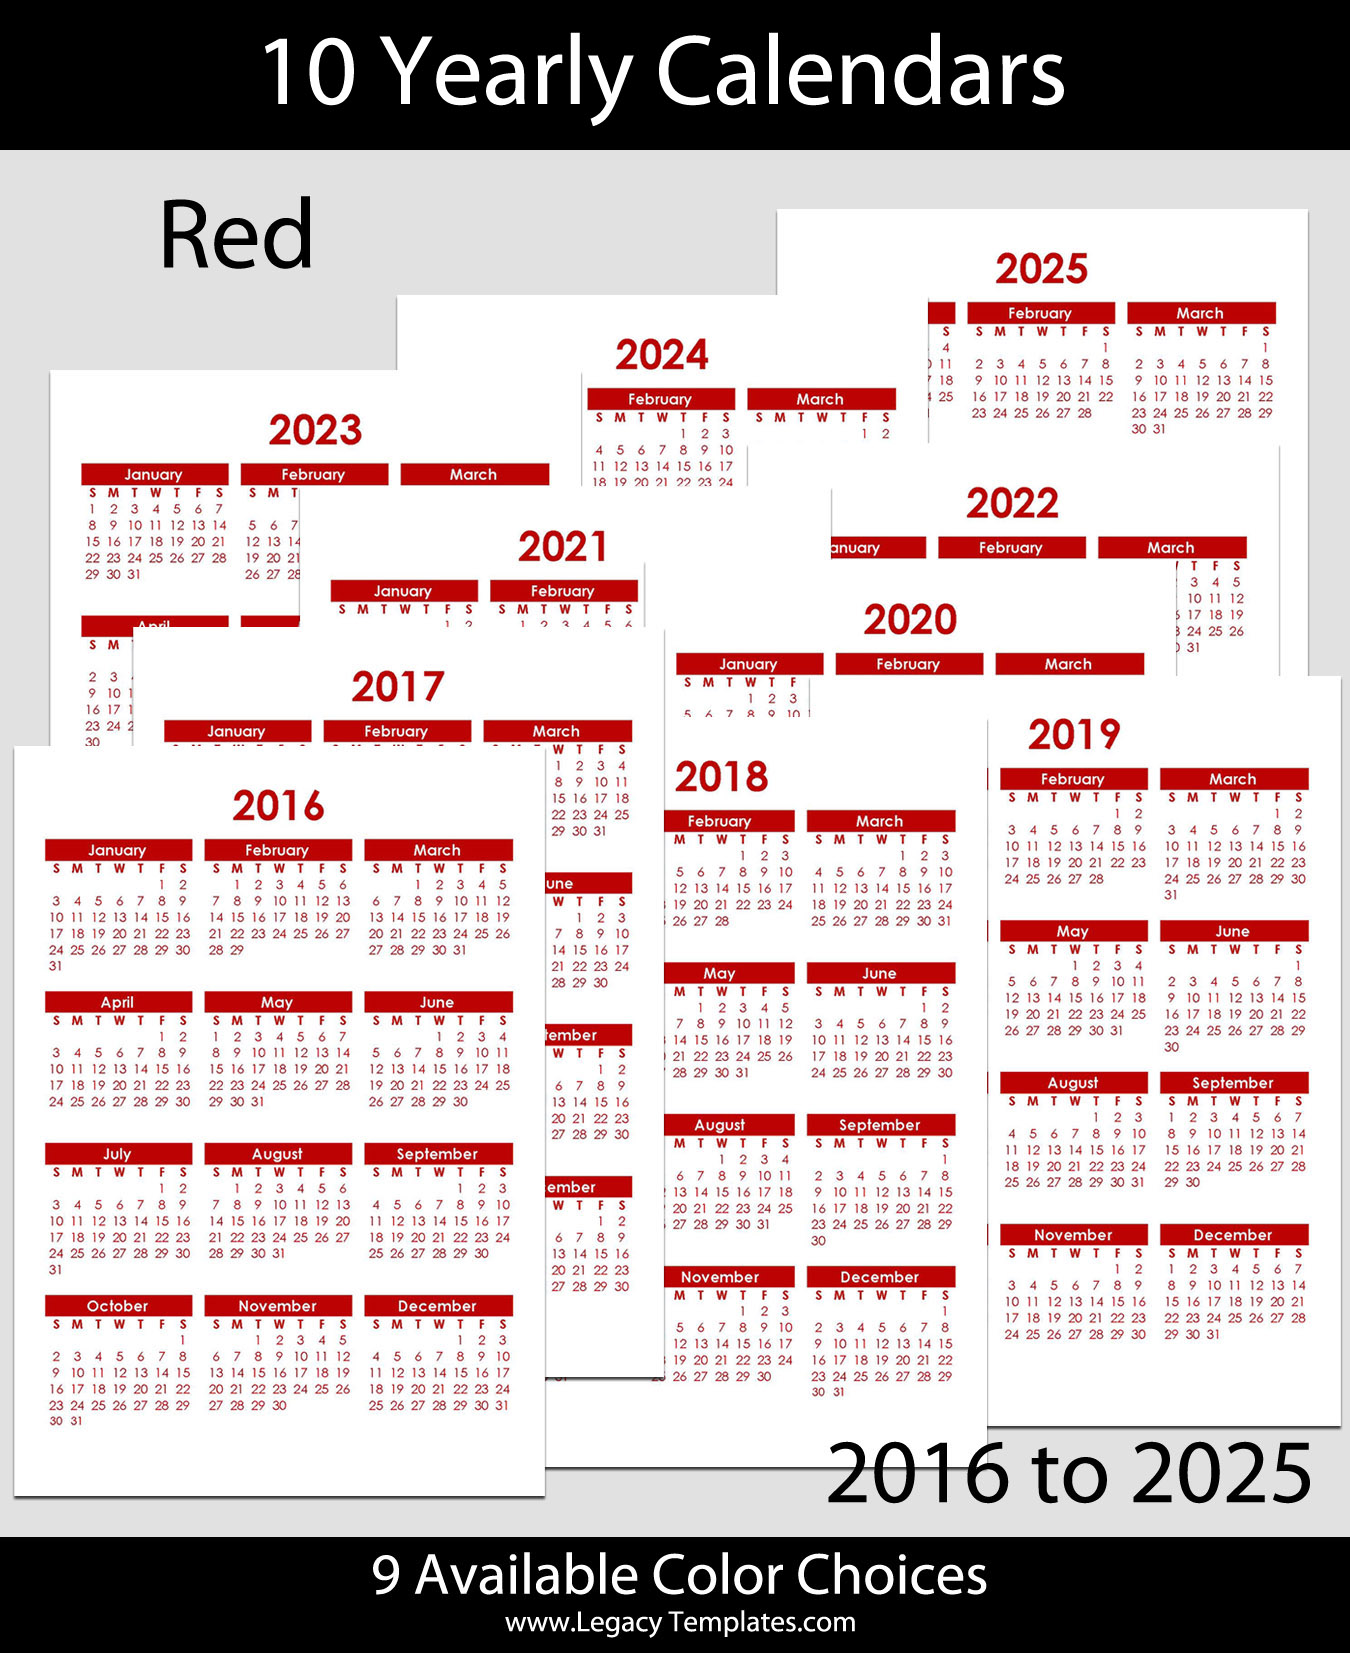 2016 to 2025 Yearly Calendar – A5 | Legacy Templates